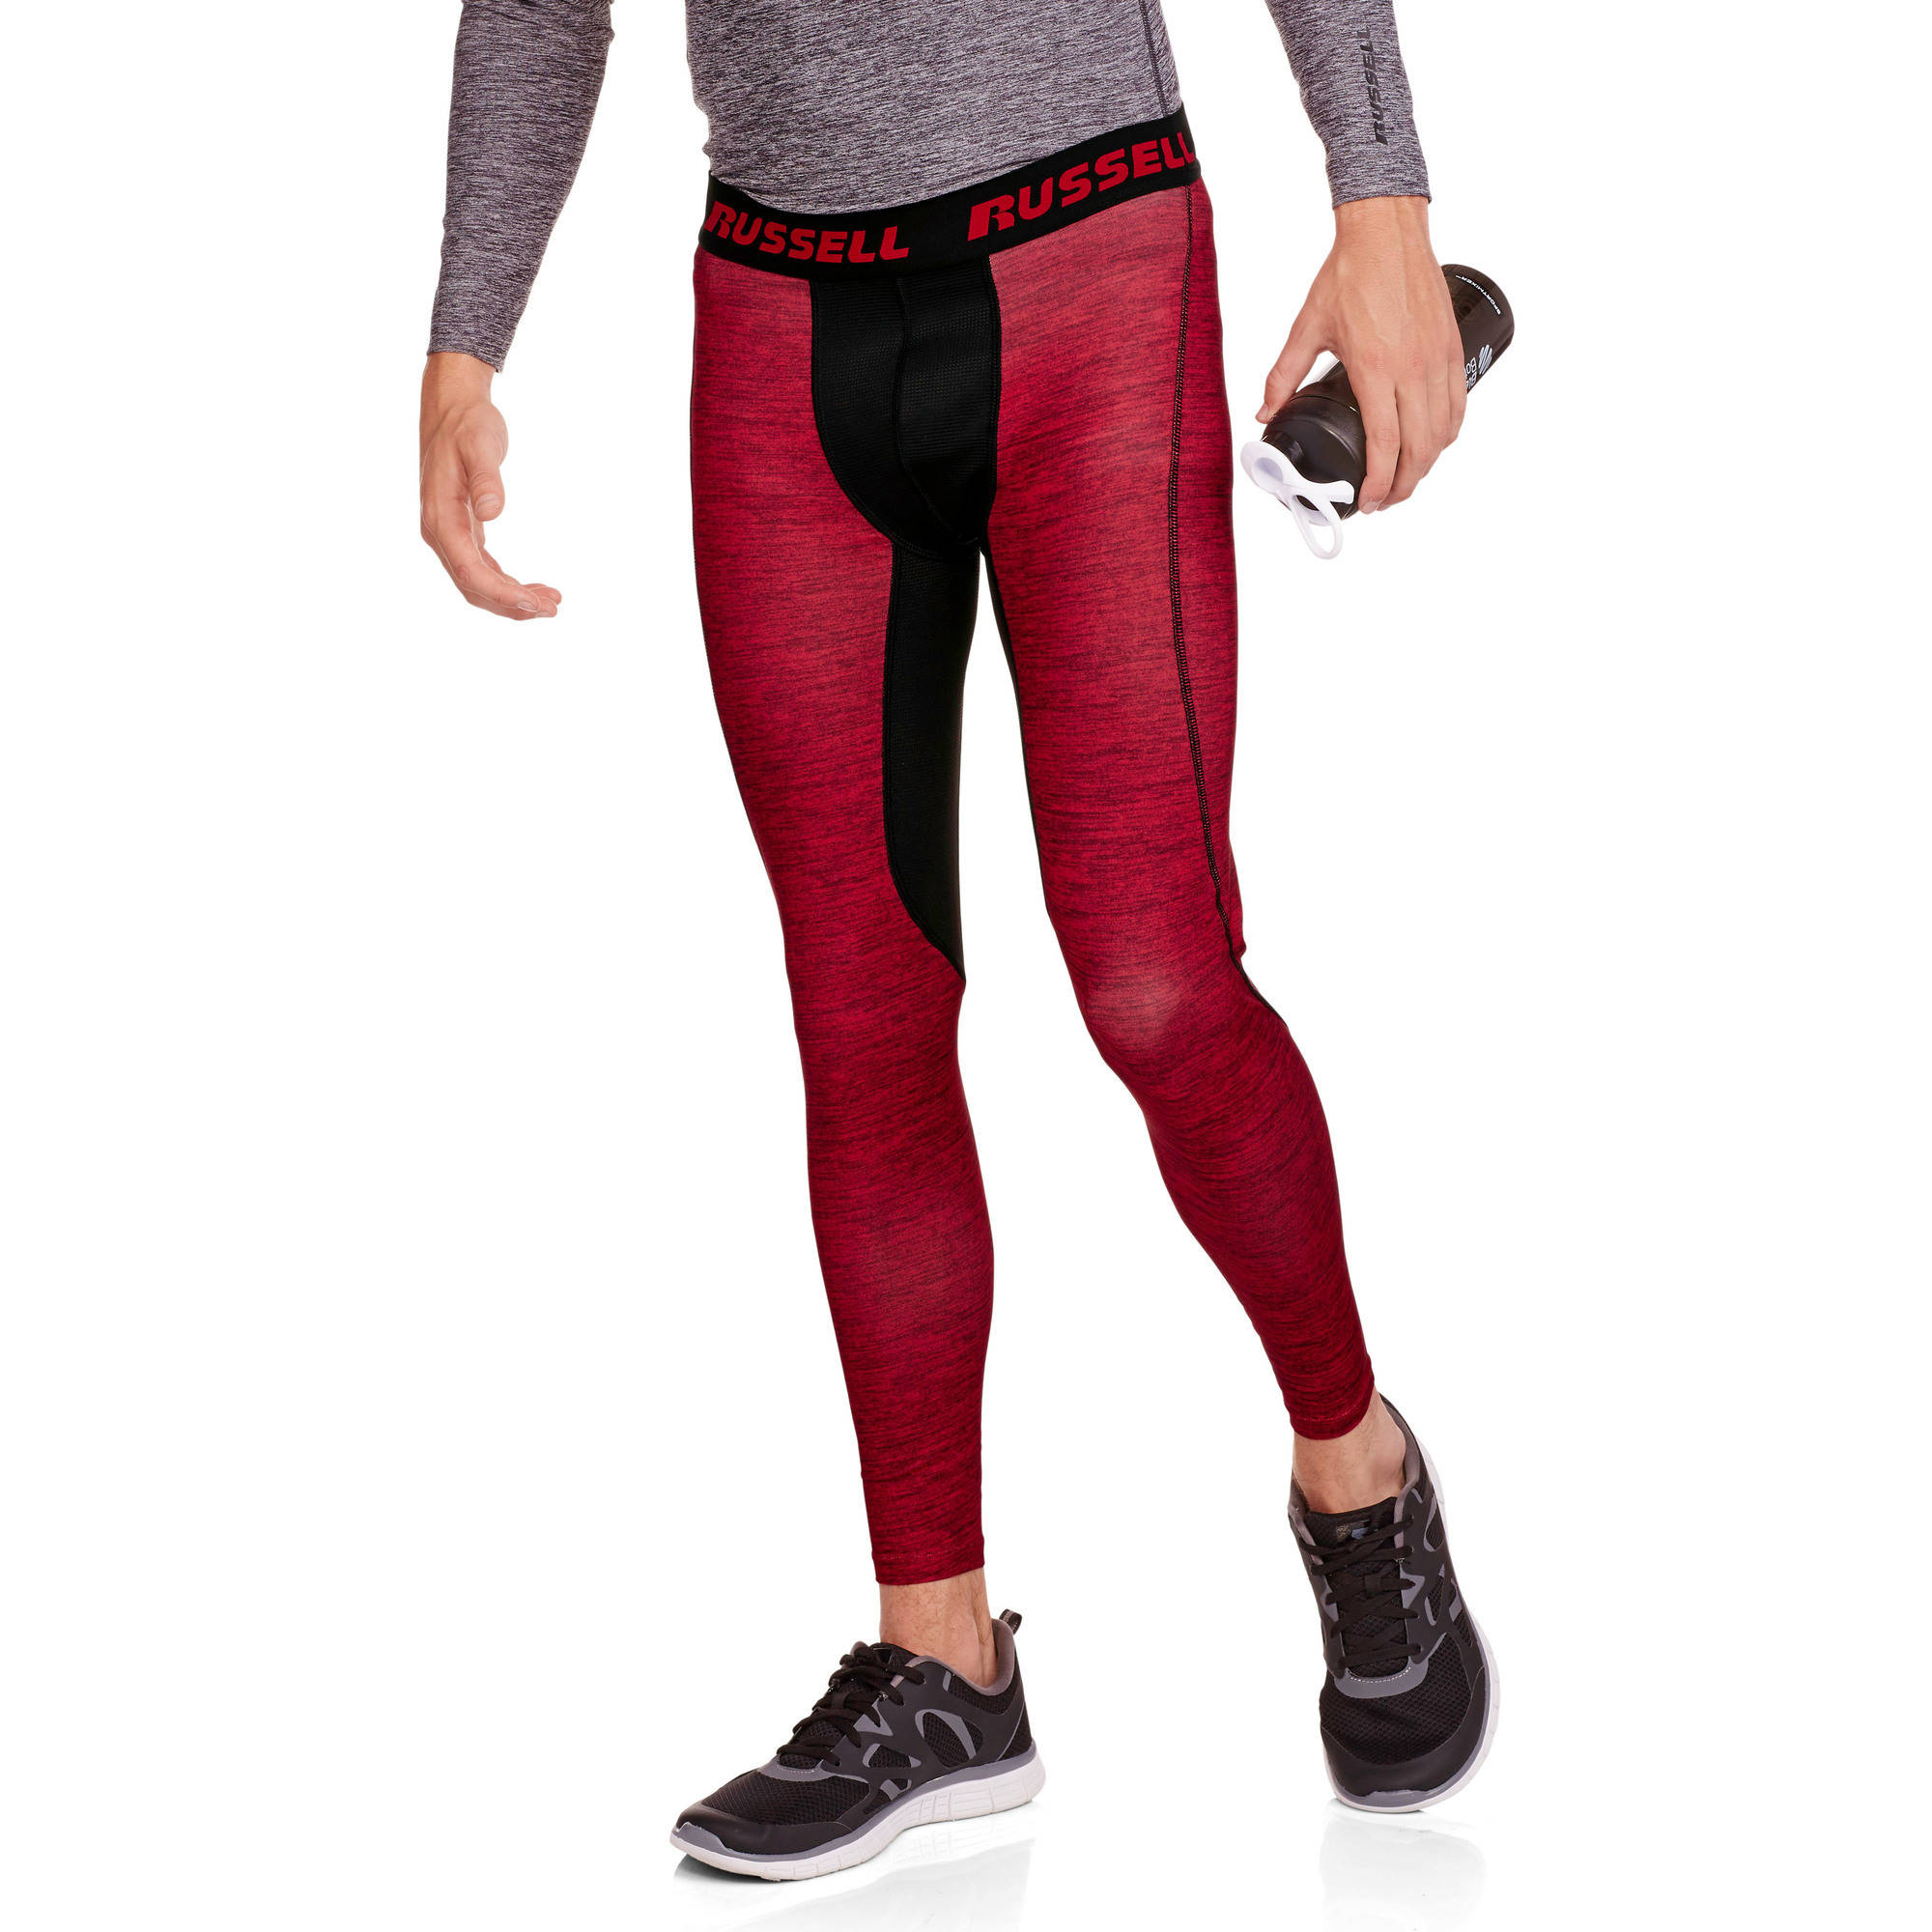 Russell Men's Printed Compression Pant